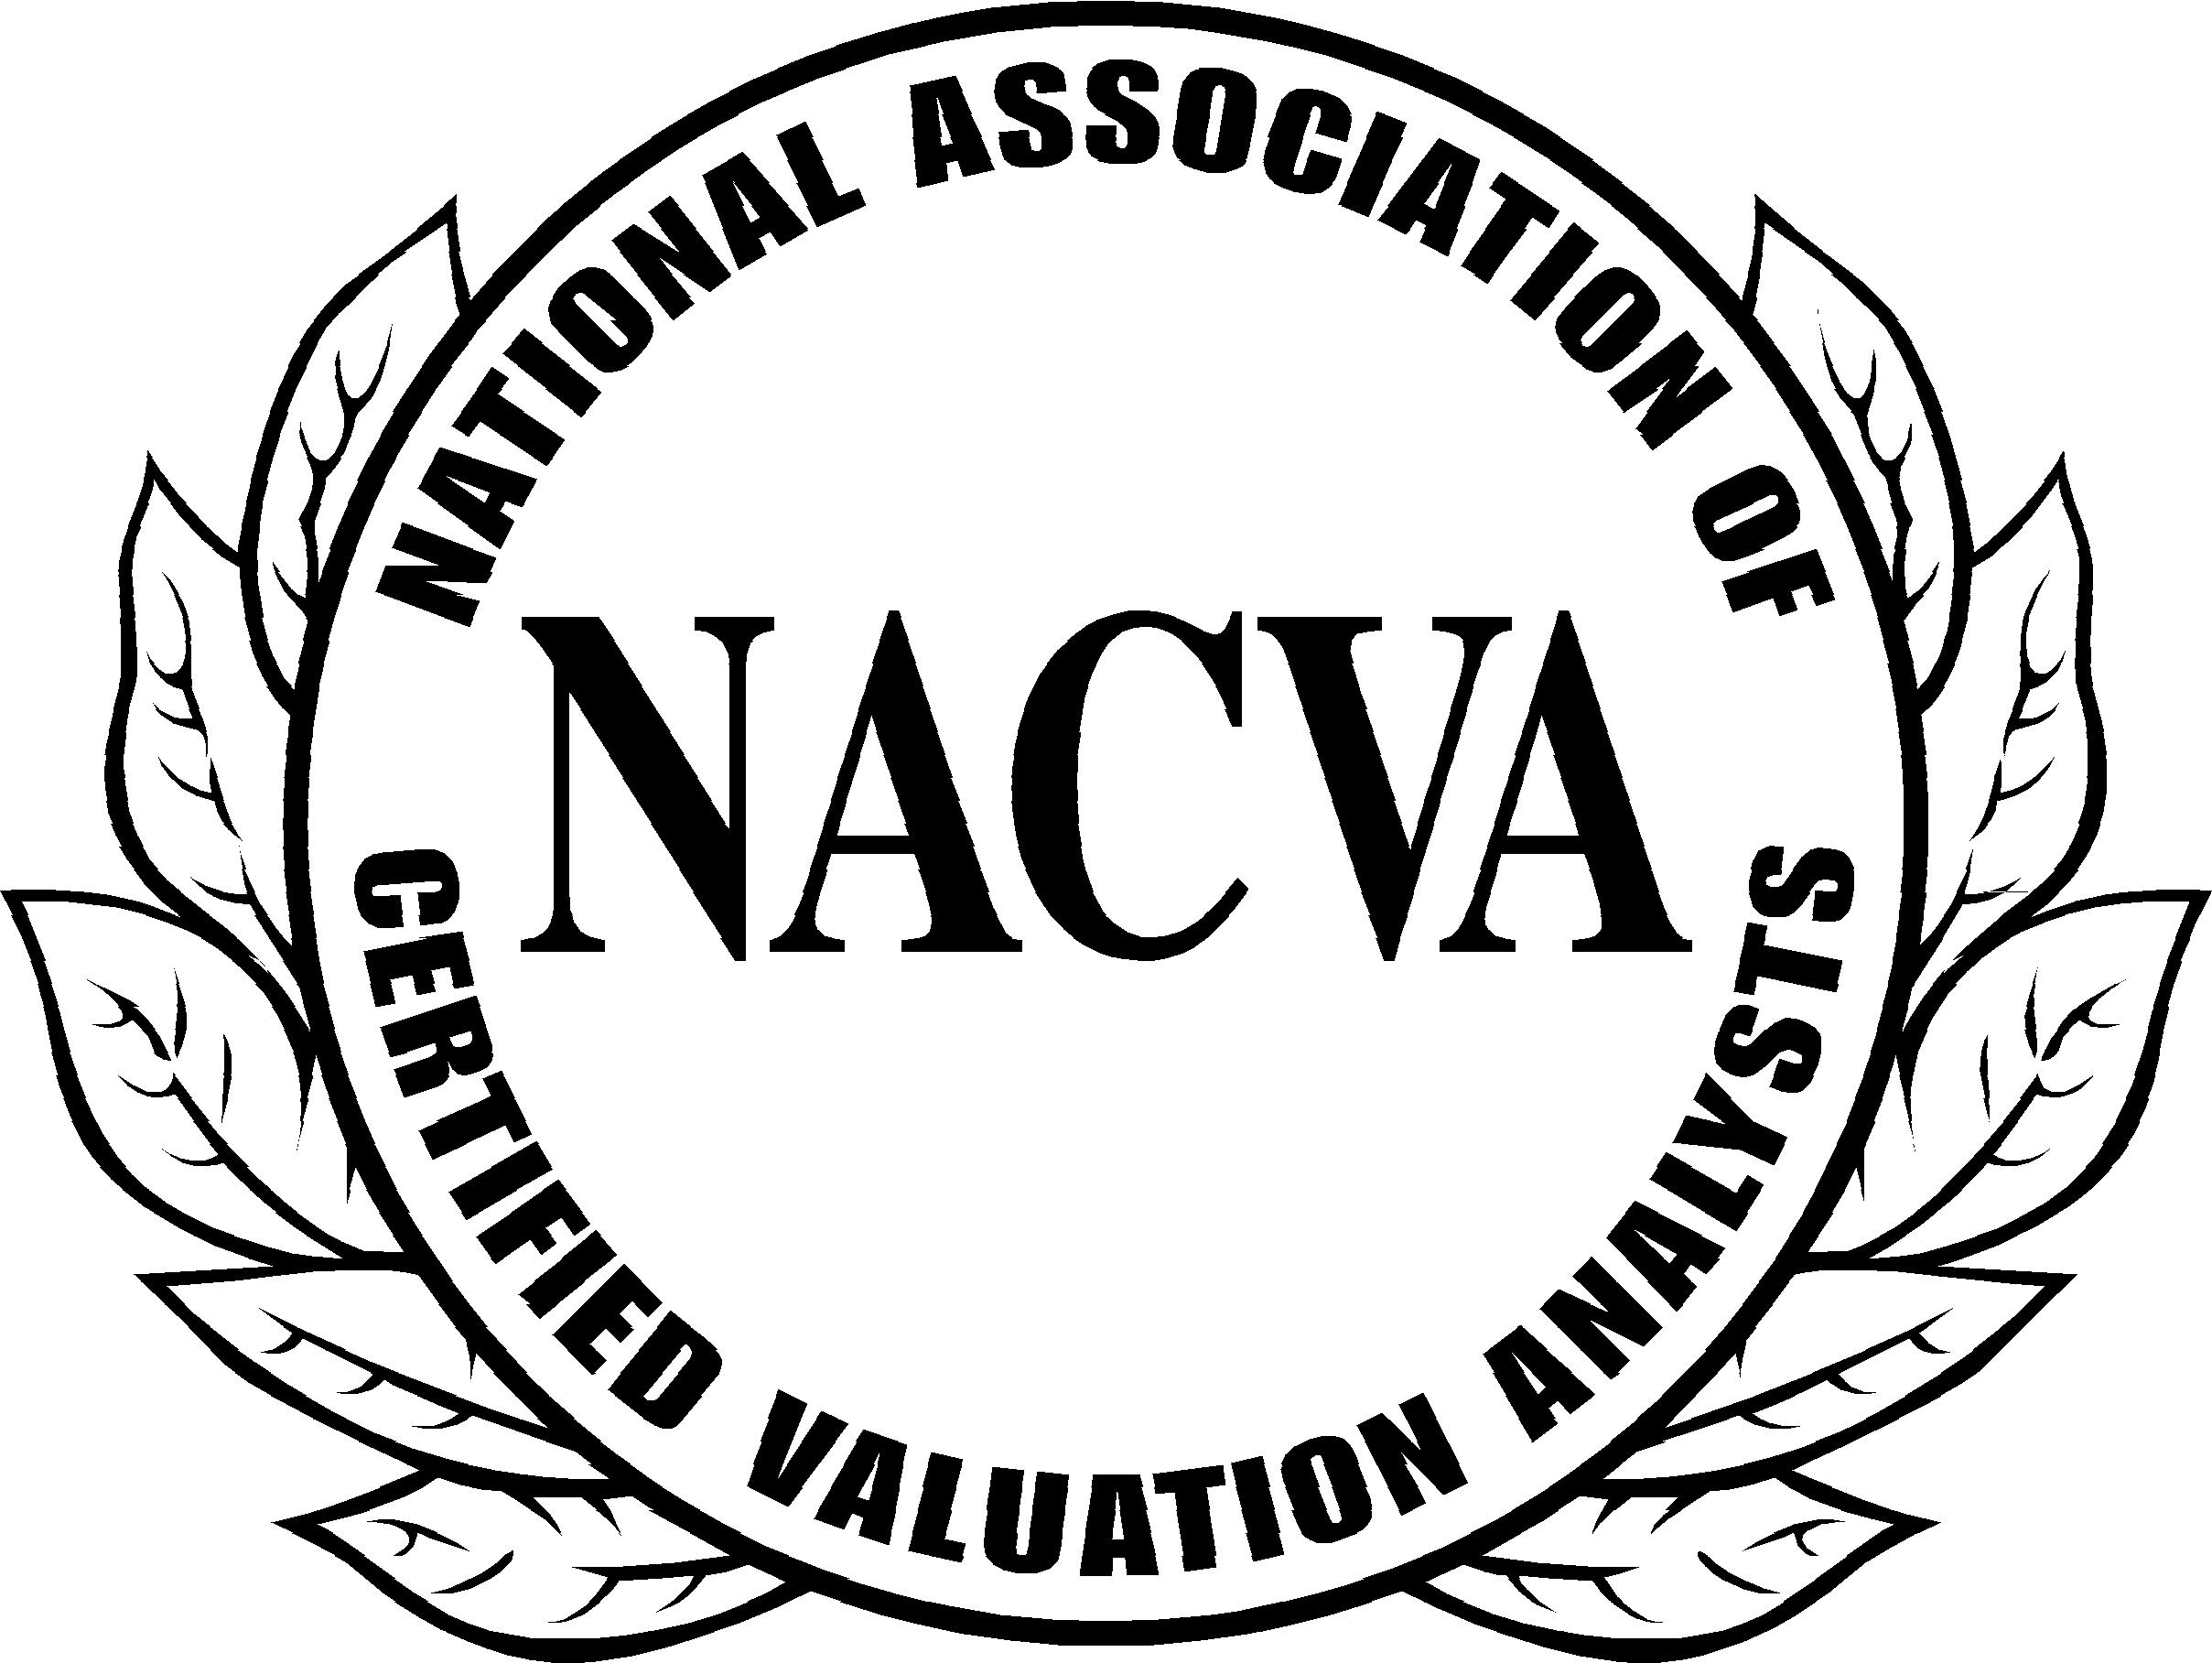 Certified Valuation Analyst Vermont Business Valuations